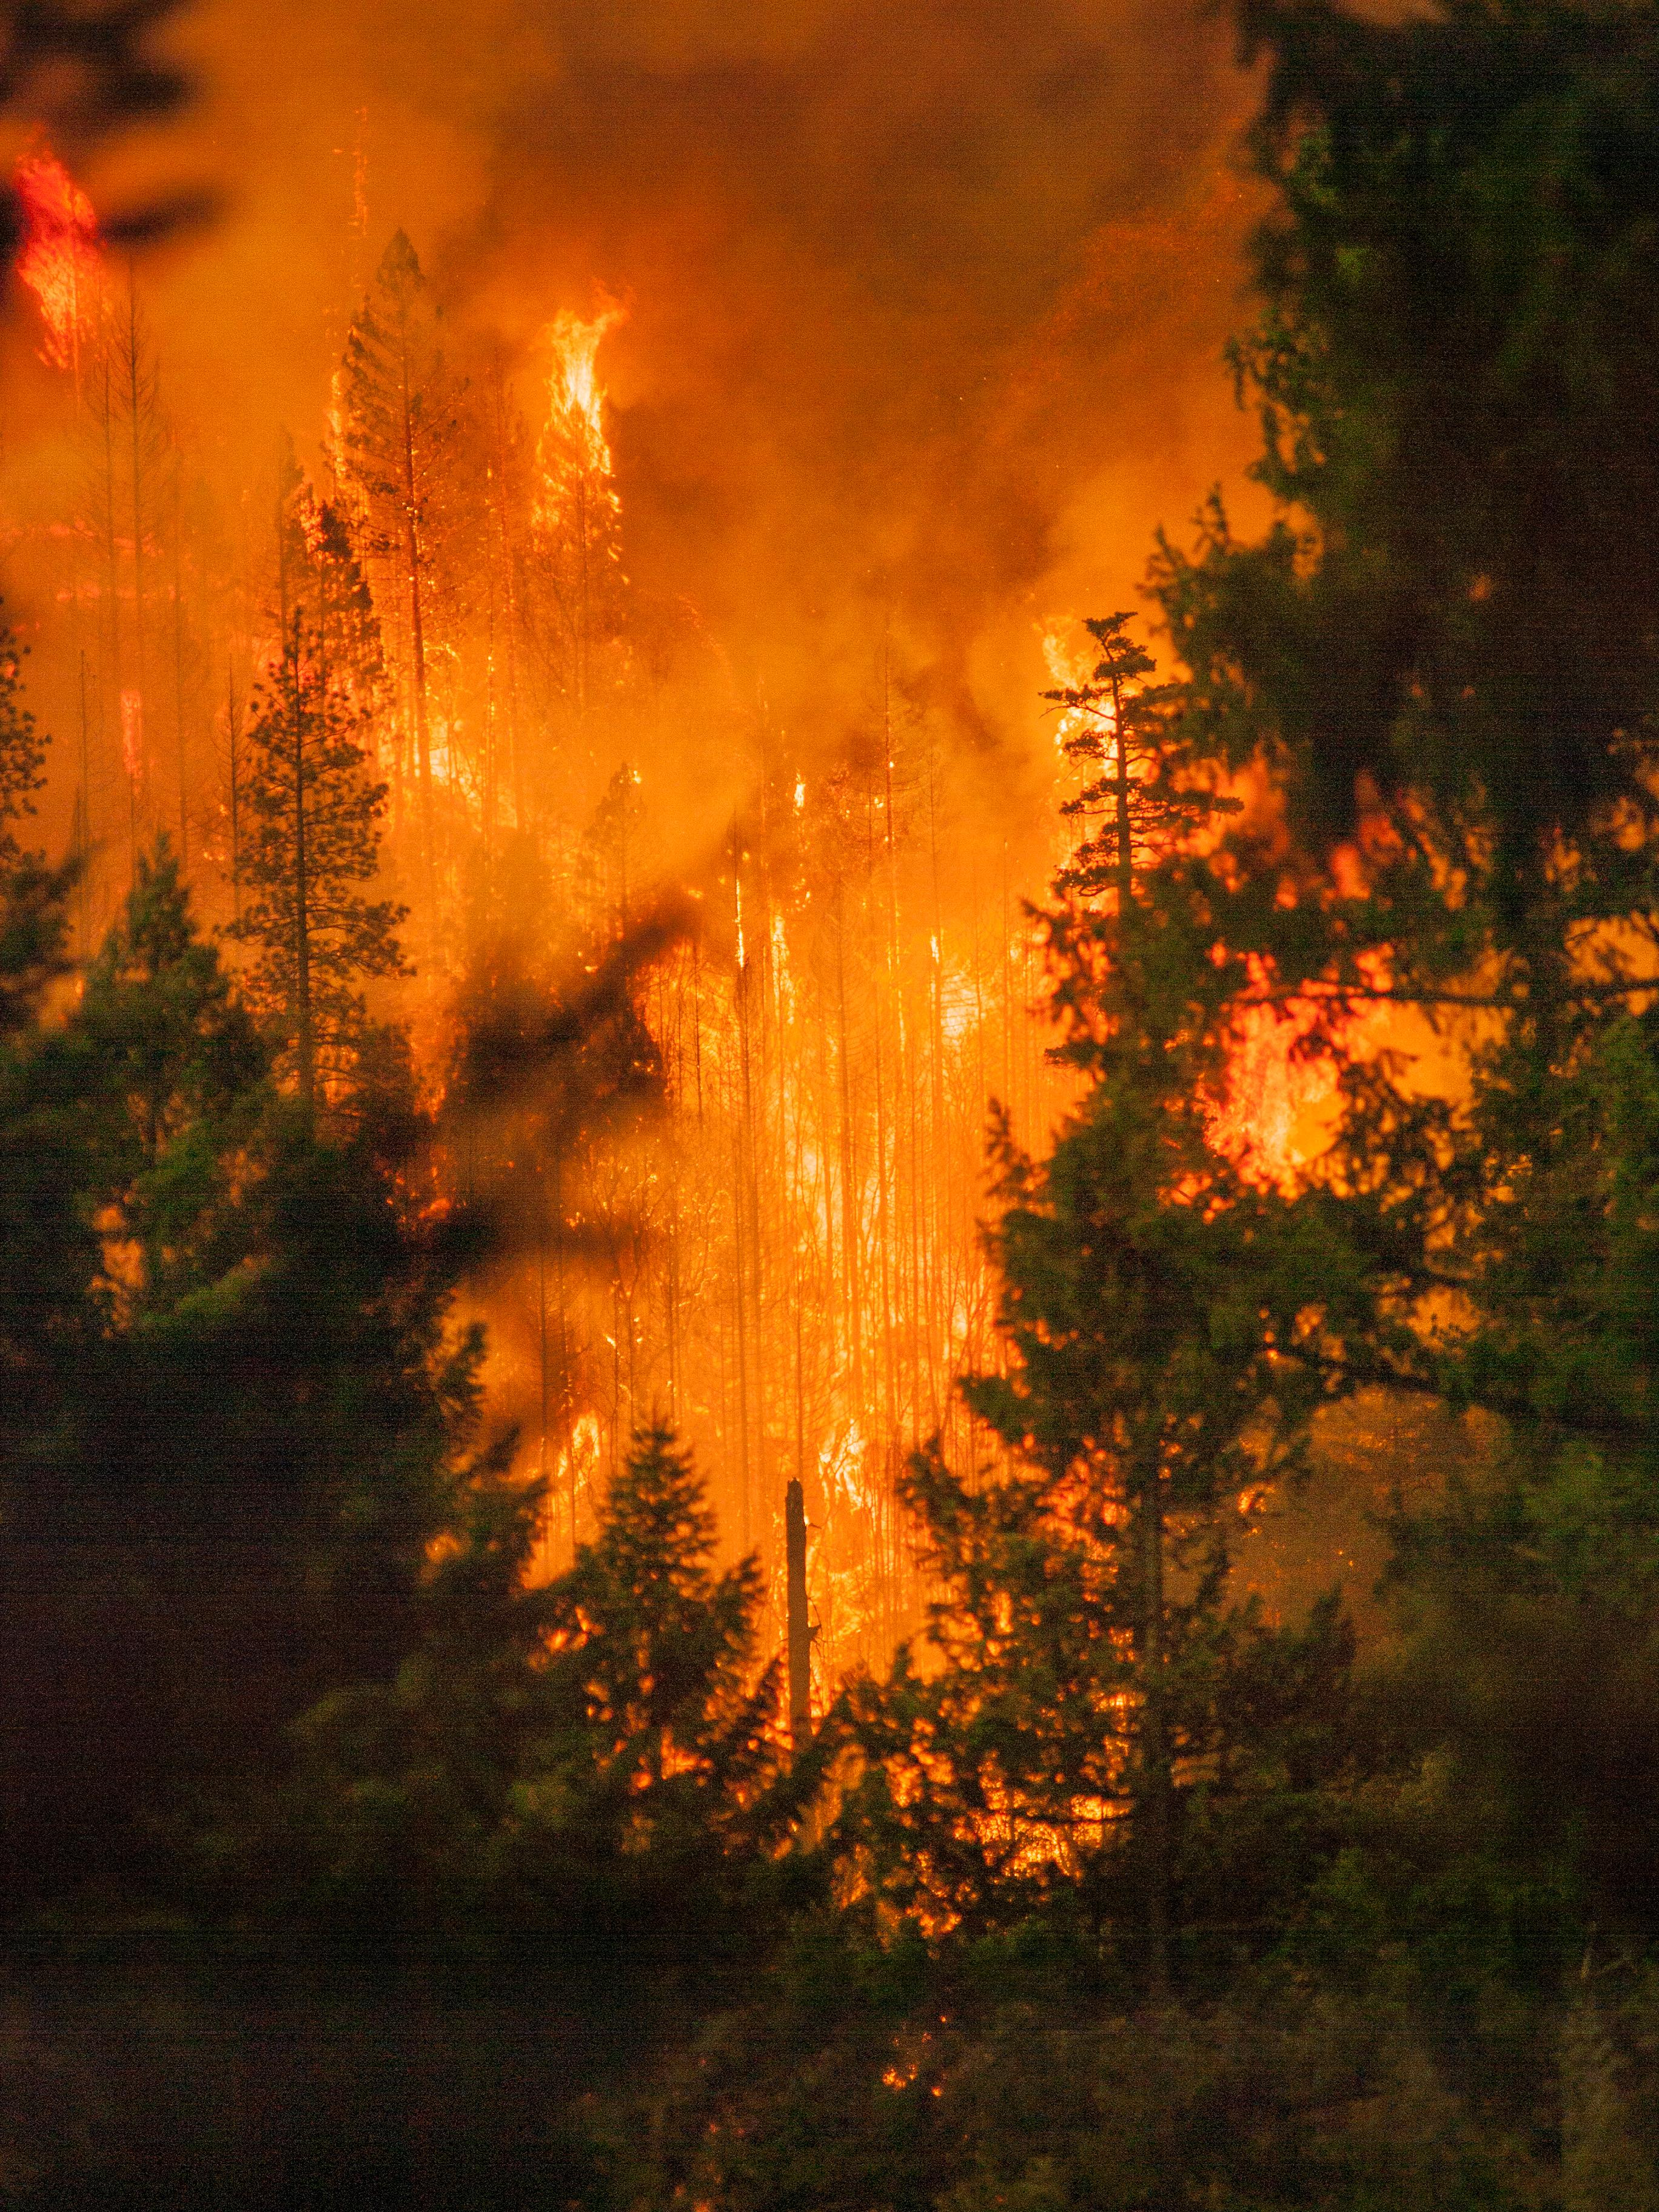 By United States Forest Service - https://inciweb.nwcg.gov/incident/photograph/5927/6/, Public Domain, https://commons.wikimedia.org/w/index.php?curid=71039420